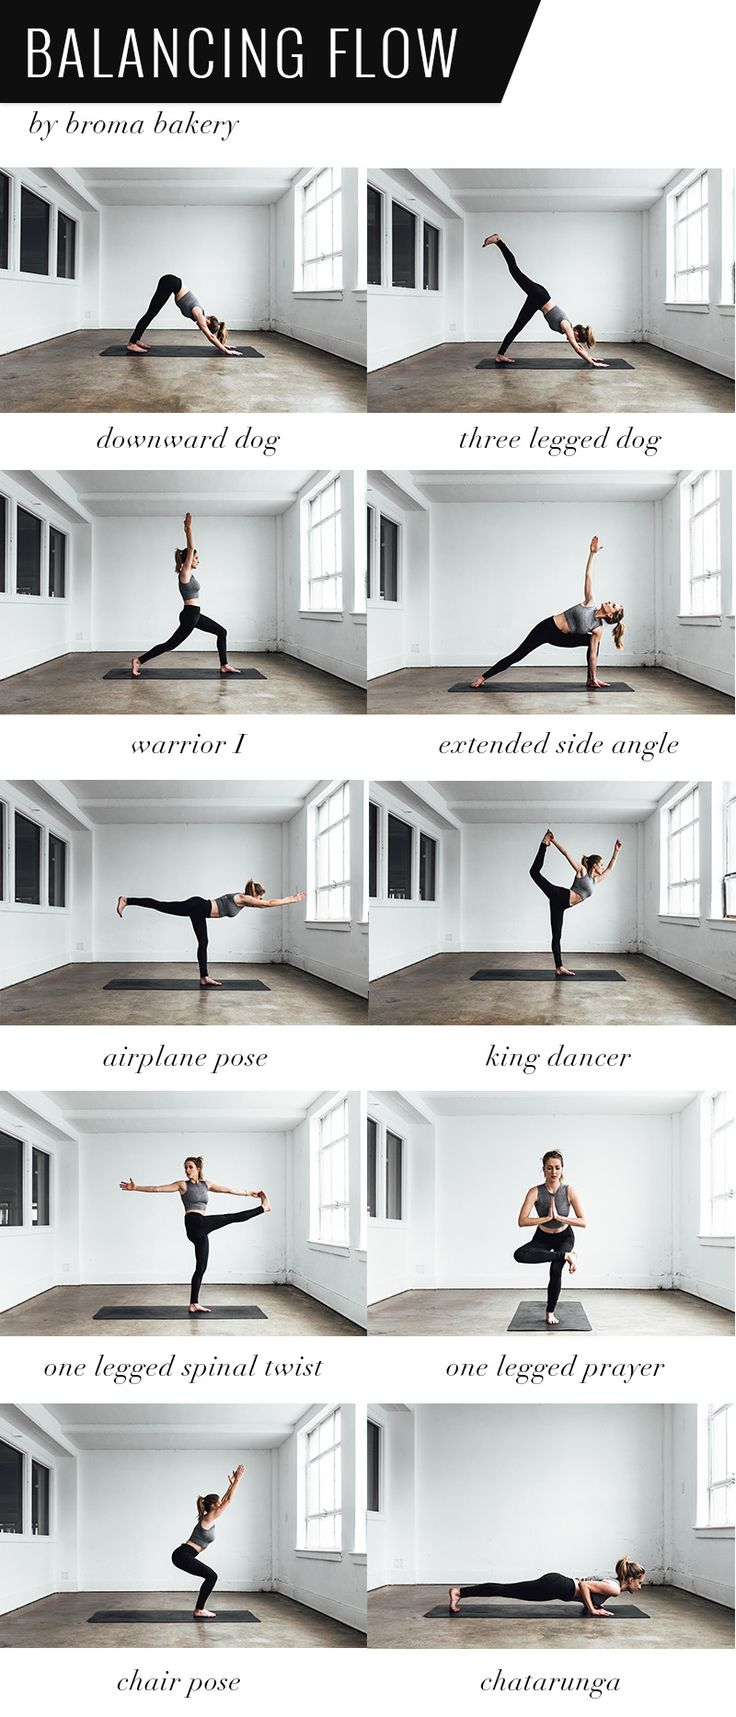 One pose will be done on the inhale and the next on the exhale. The result is a fast-paced flow that gets your heart rate up, and hopefully gets you lost in movement. Flow through 3-4 times on each side (should take 15-20 minutes)